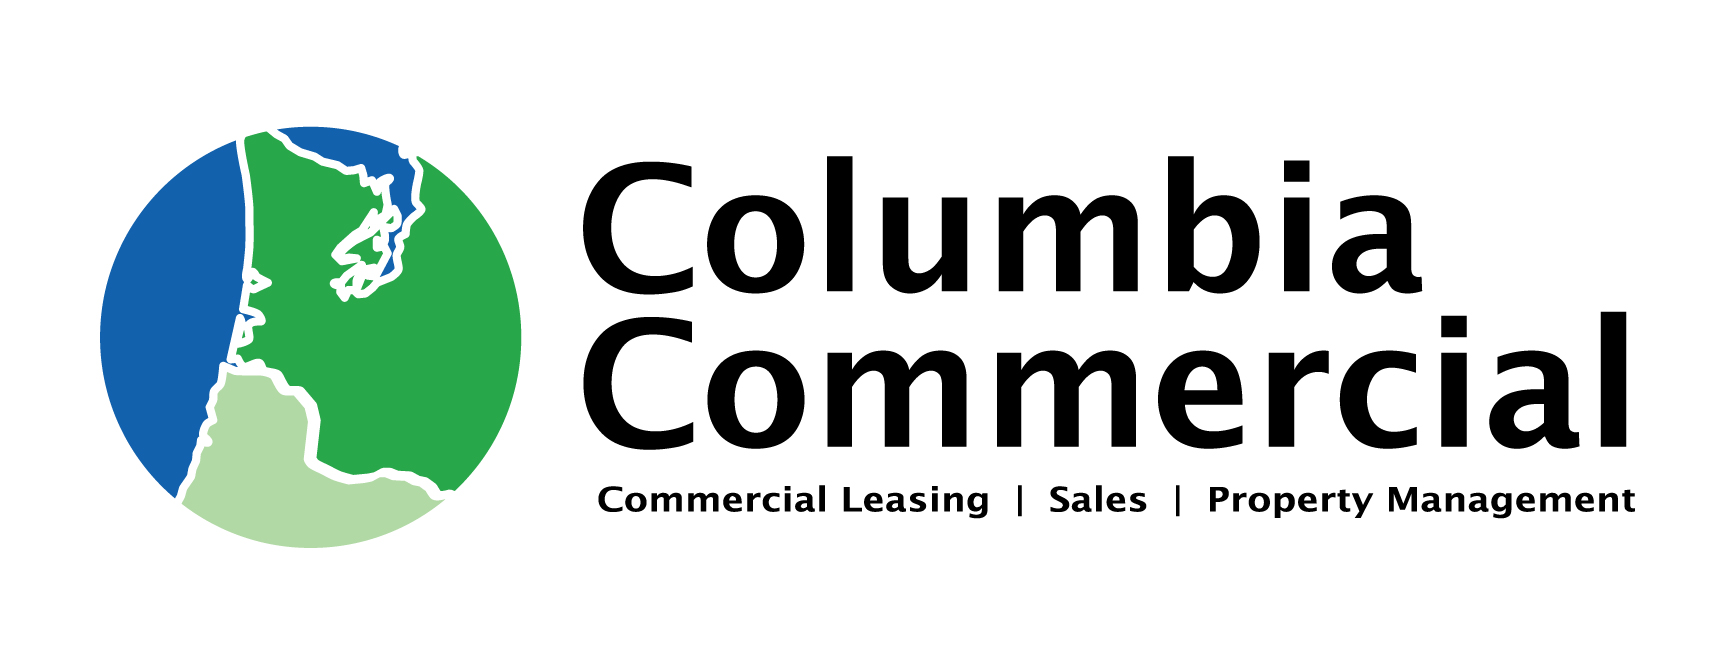 Columbia Commercial Logo_Primary - Color.jpg